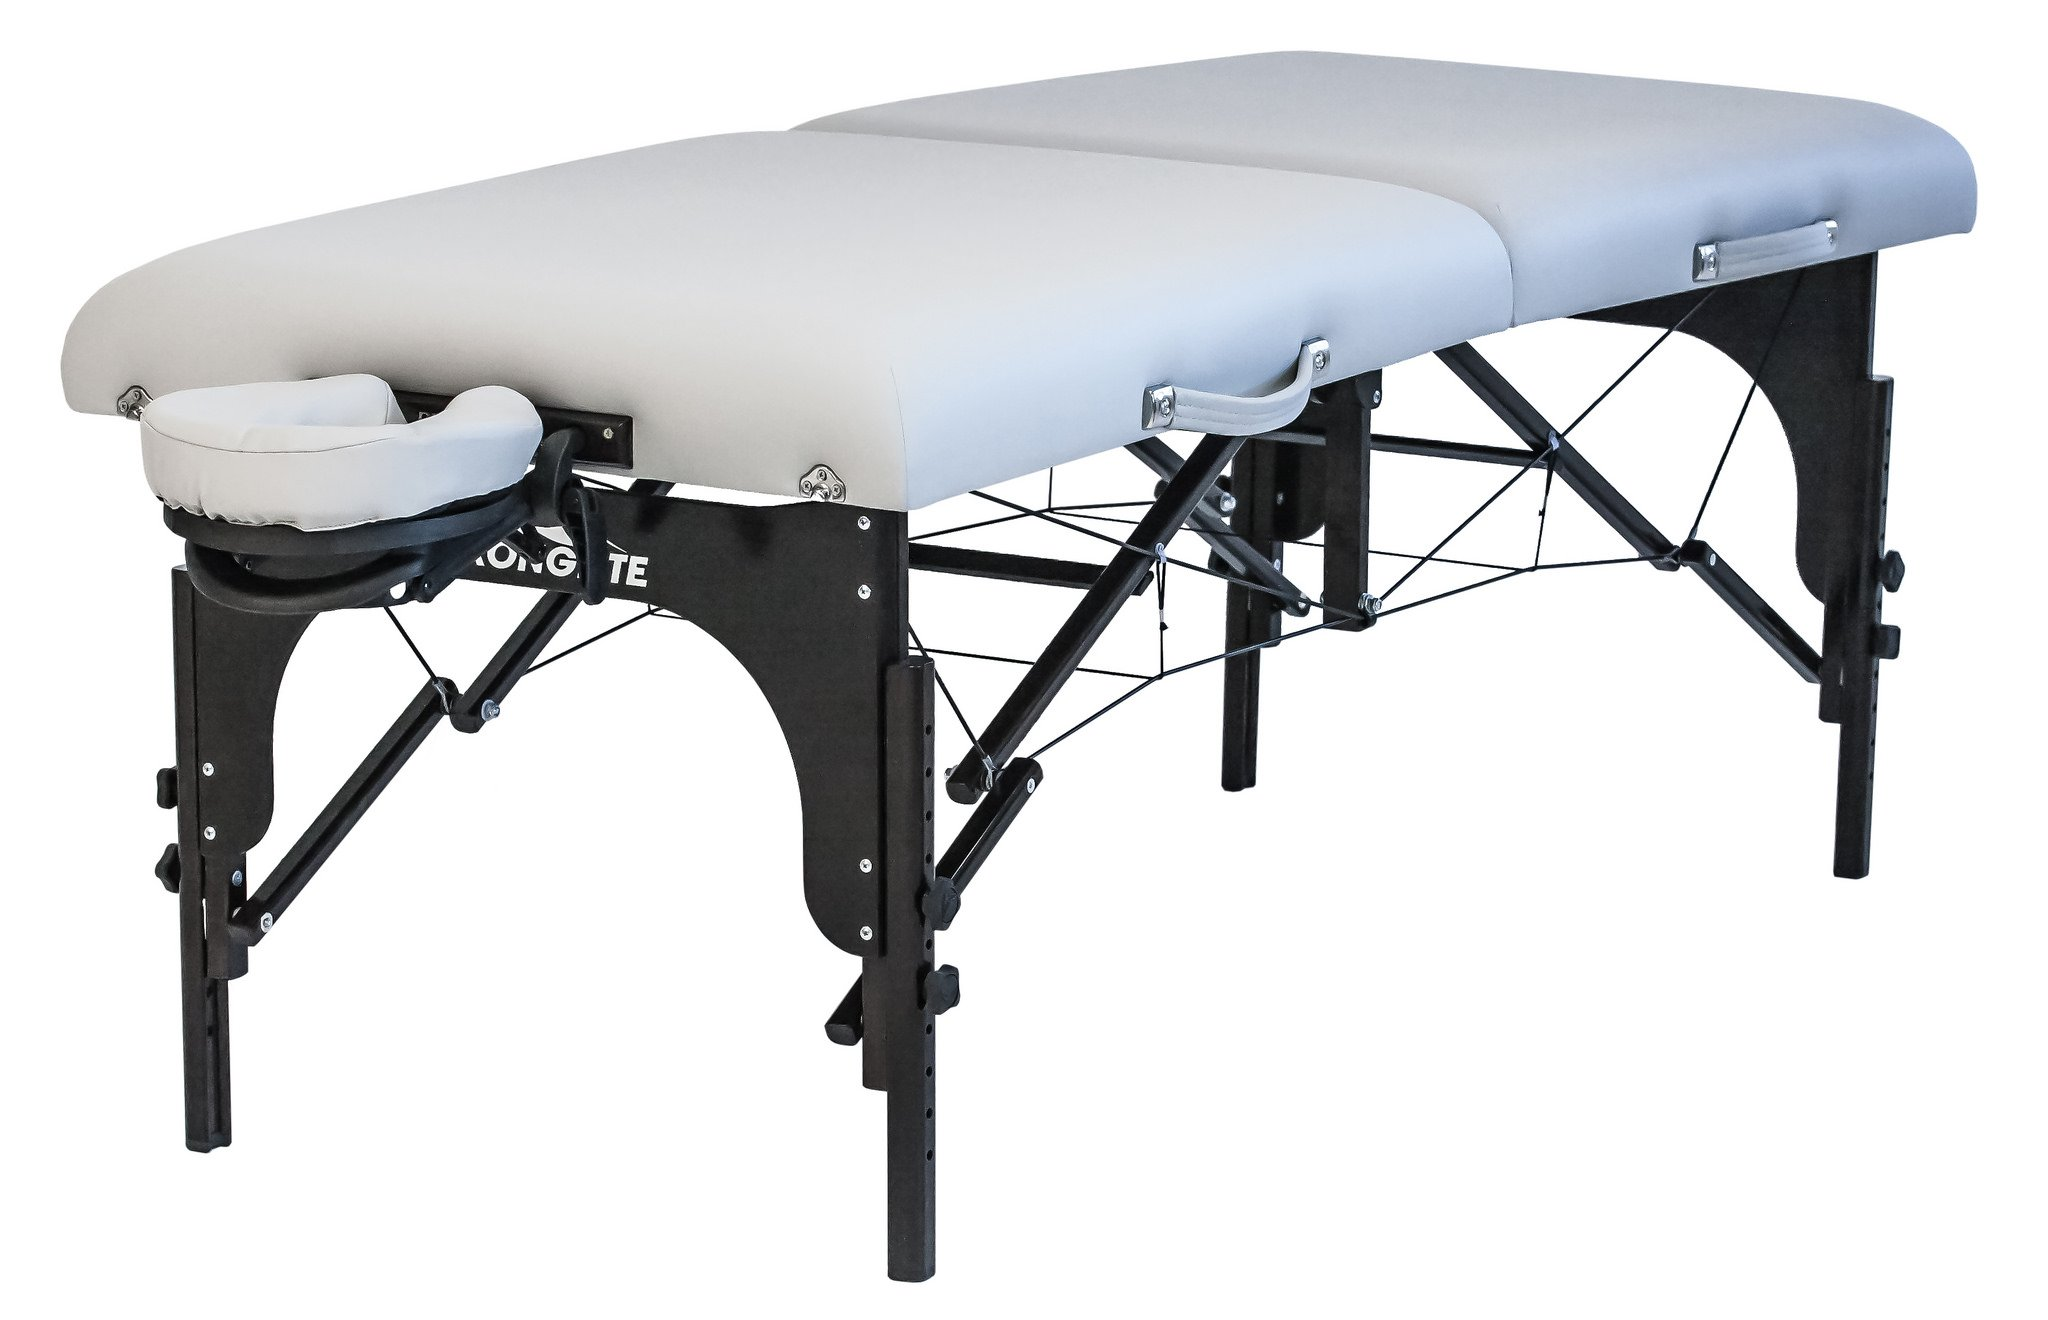 Stronglite Premier Portable Massage Table - Highest-Strength, 3'' Deluxe Foam System, Incl. Flex-Rest Headrest and Memory Foam Pillow